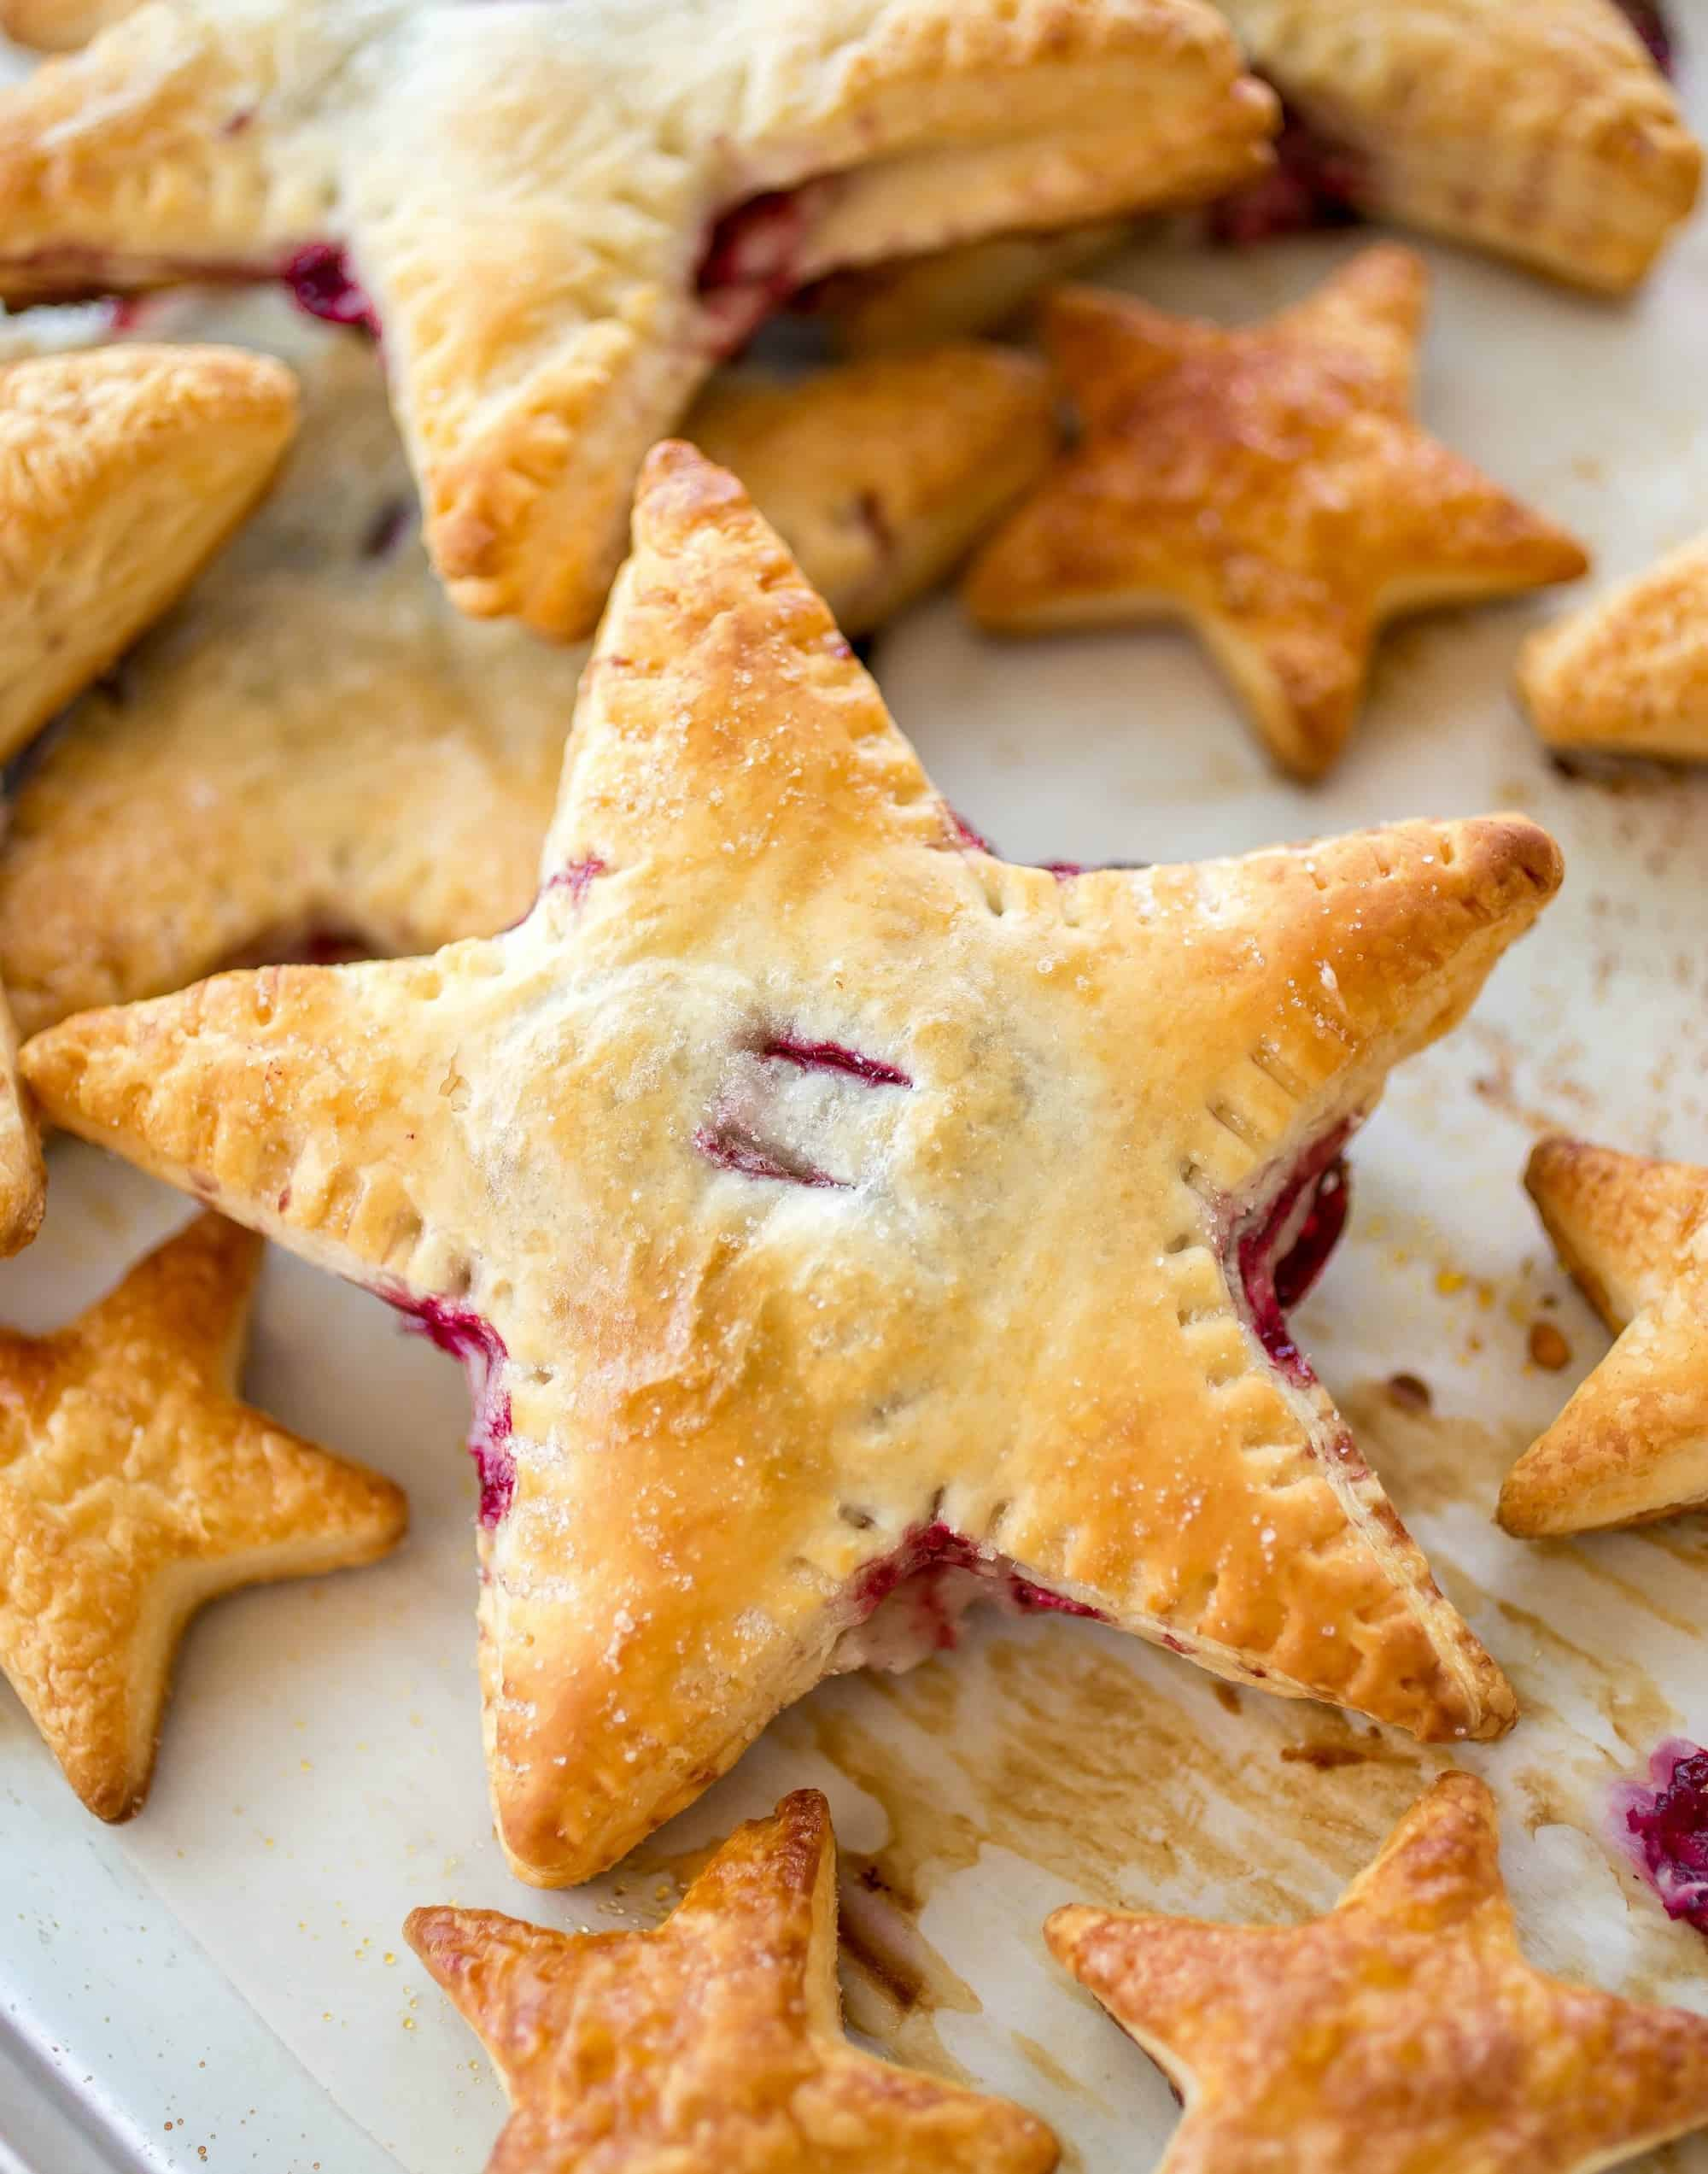 Cherries and Cream Cheese Danish Stars - These cherries and cream danishes are so much fun for the Summer holidays coming up! The dough is flakey, buttery, and crispy on the outside and the inside has a creamy cream cheese filling topped with some homemade cherry preserves!